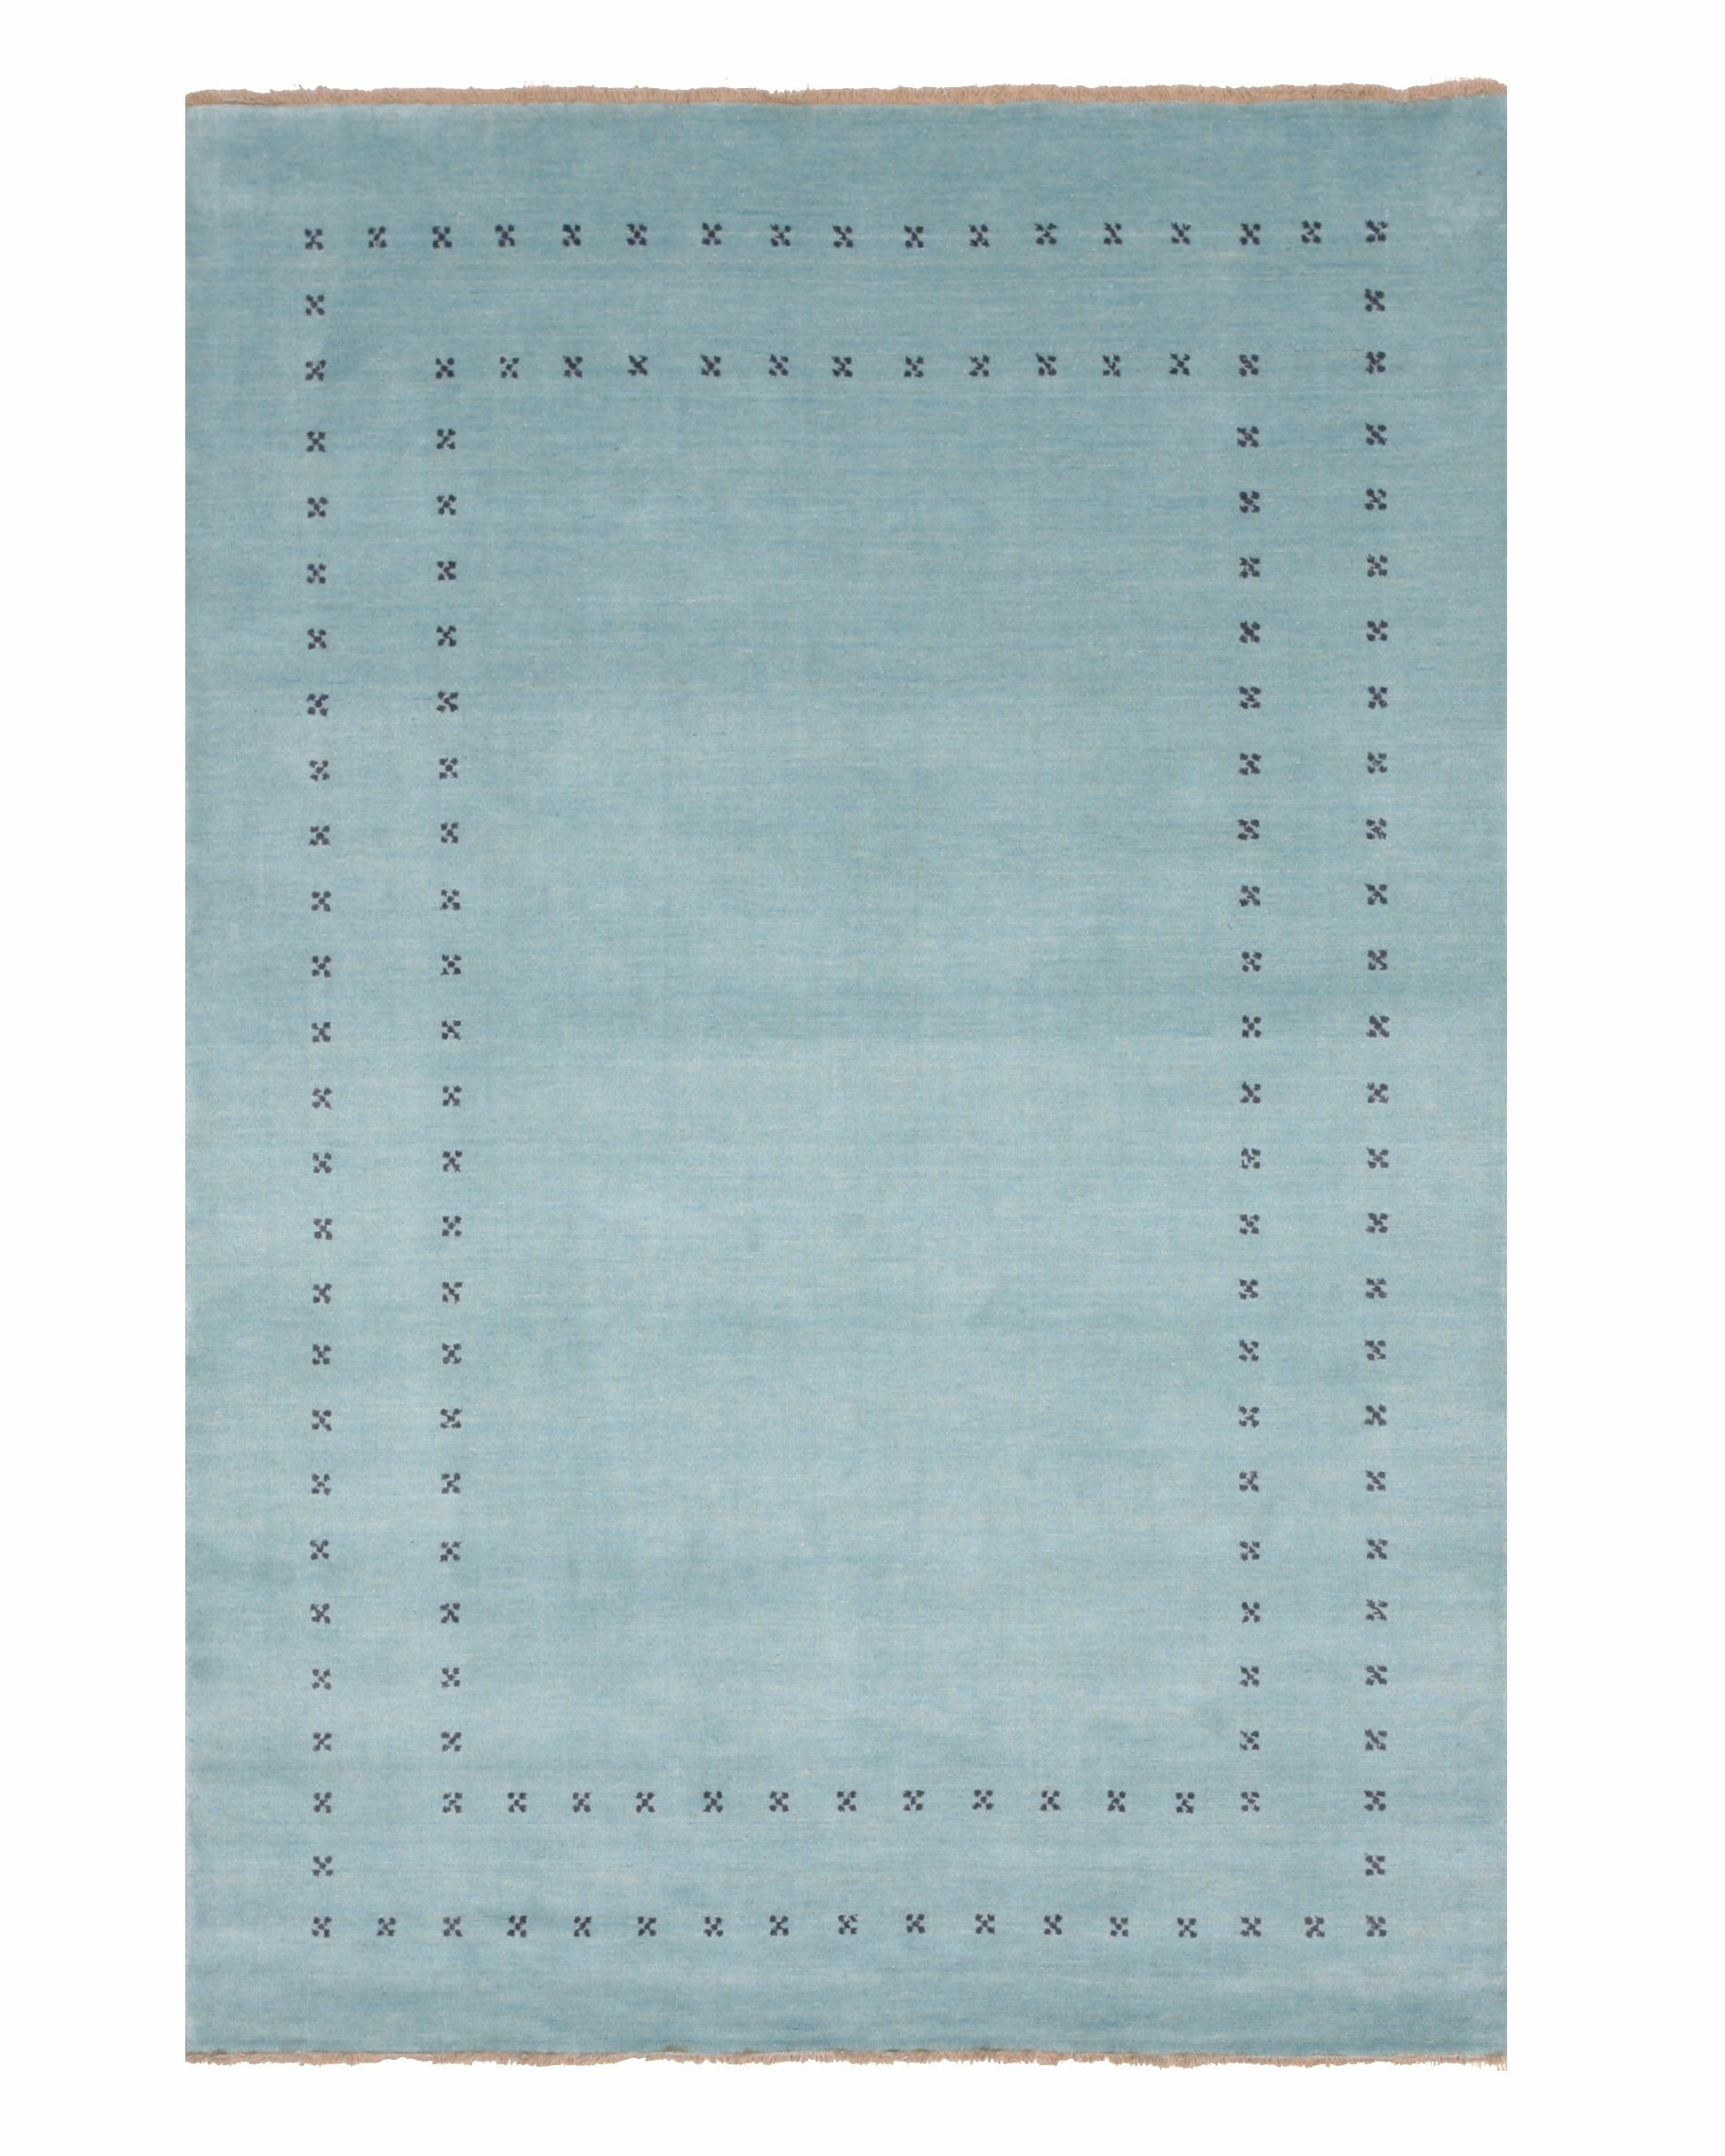 Dreher Transitional Solid Hand-Woven Wool Aqua Area Rug Rug Size: Rectangle 8' x 10'